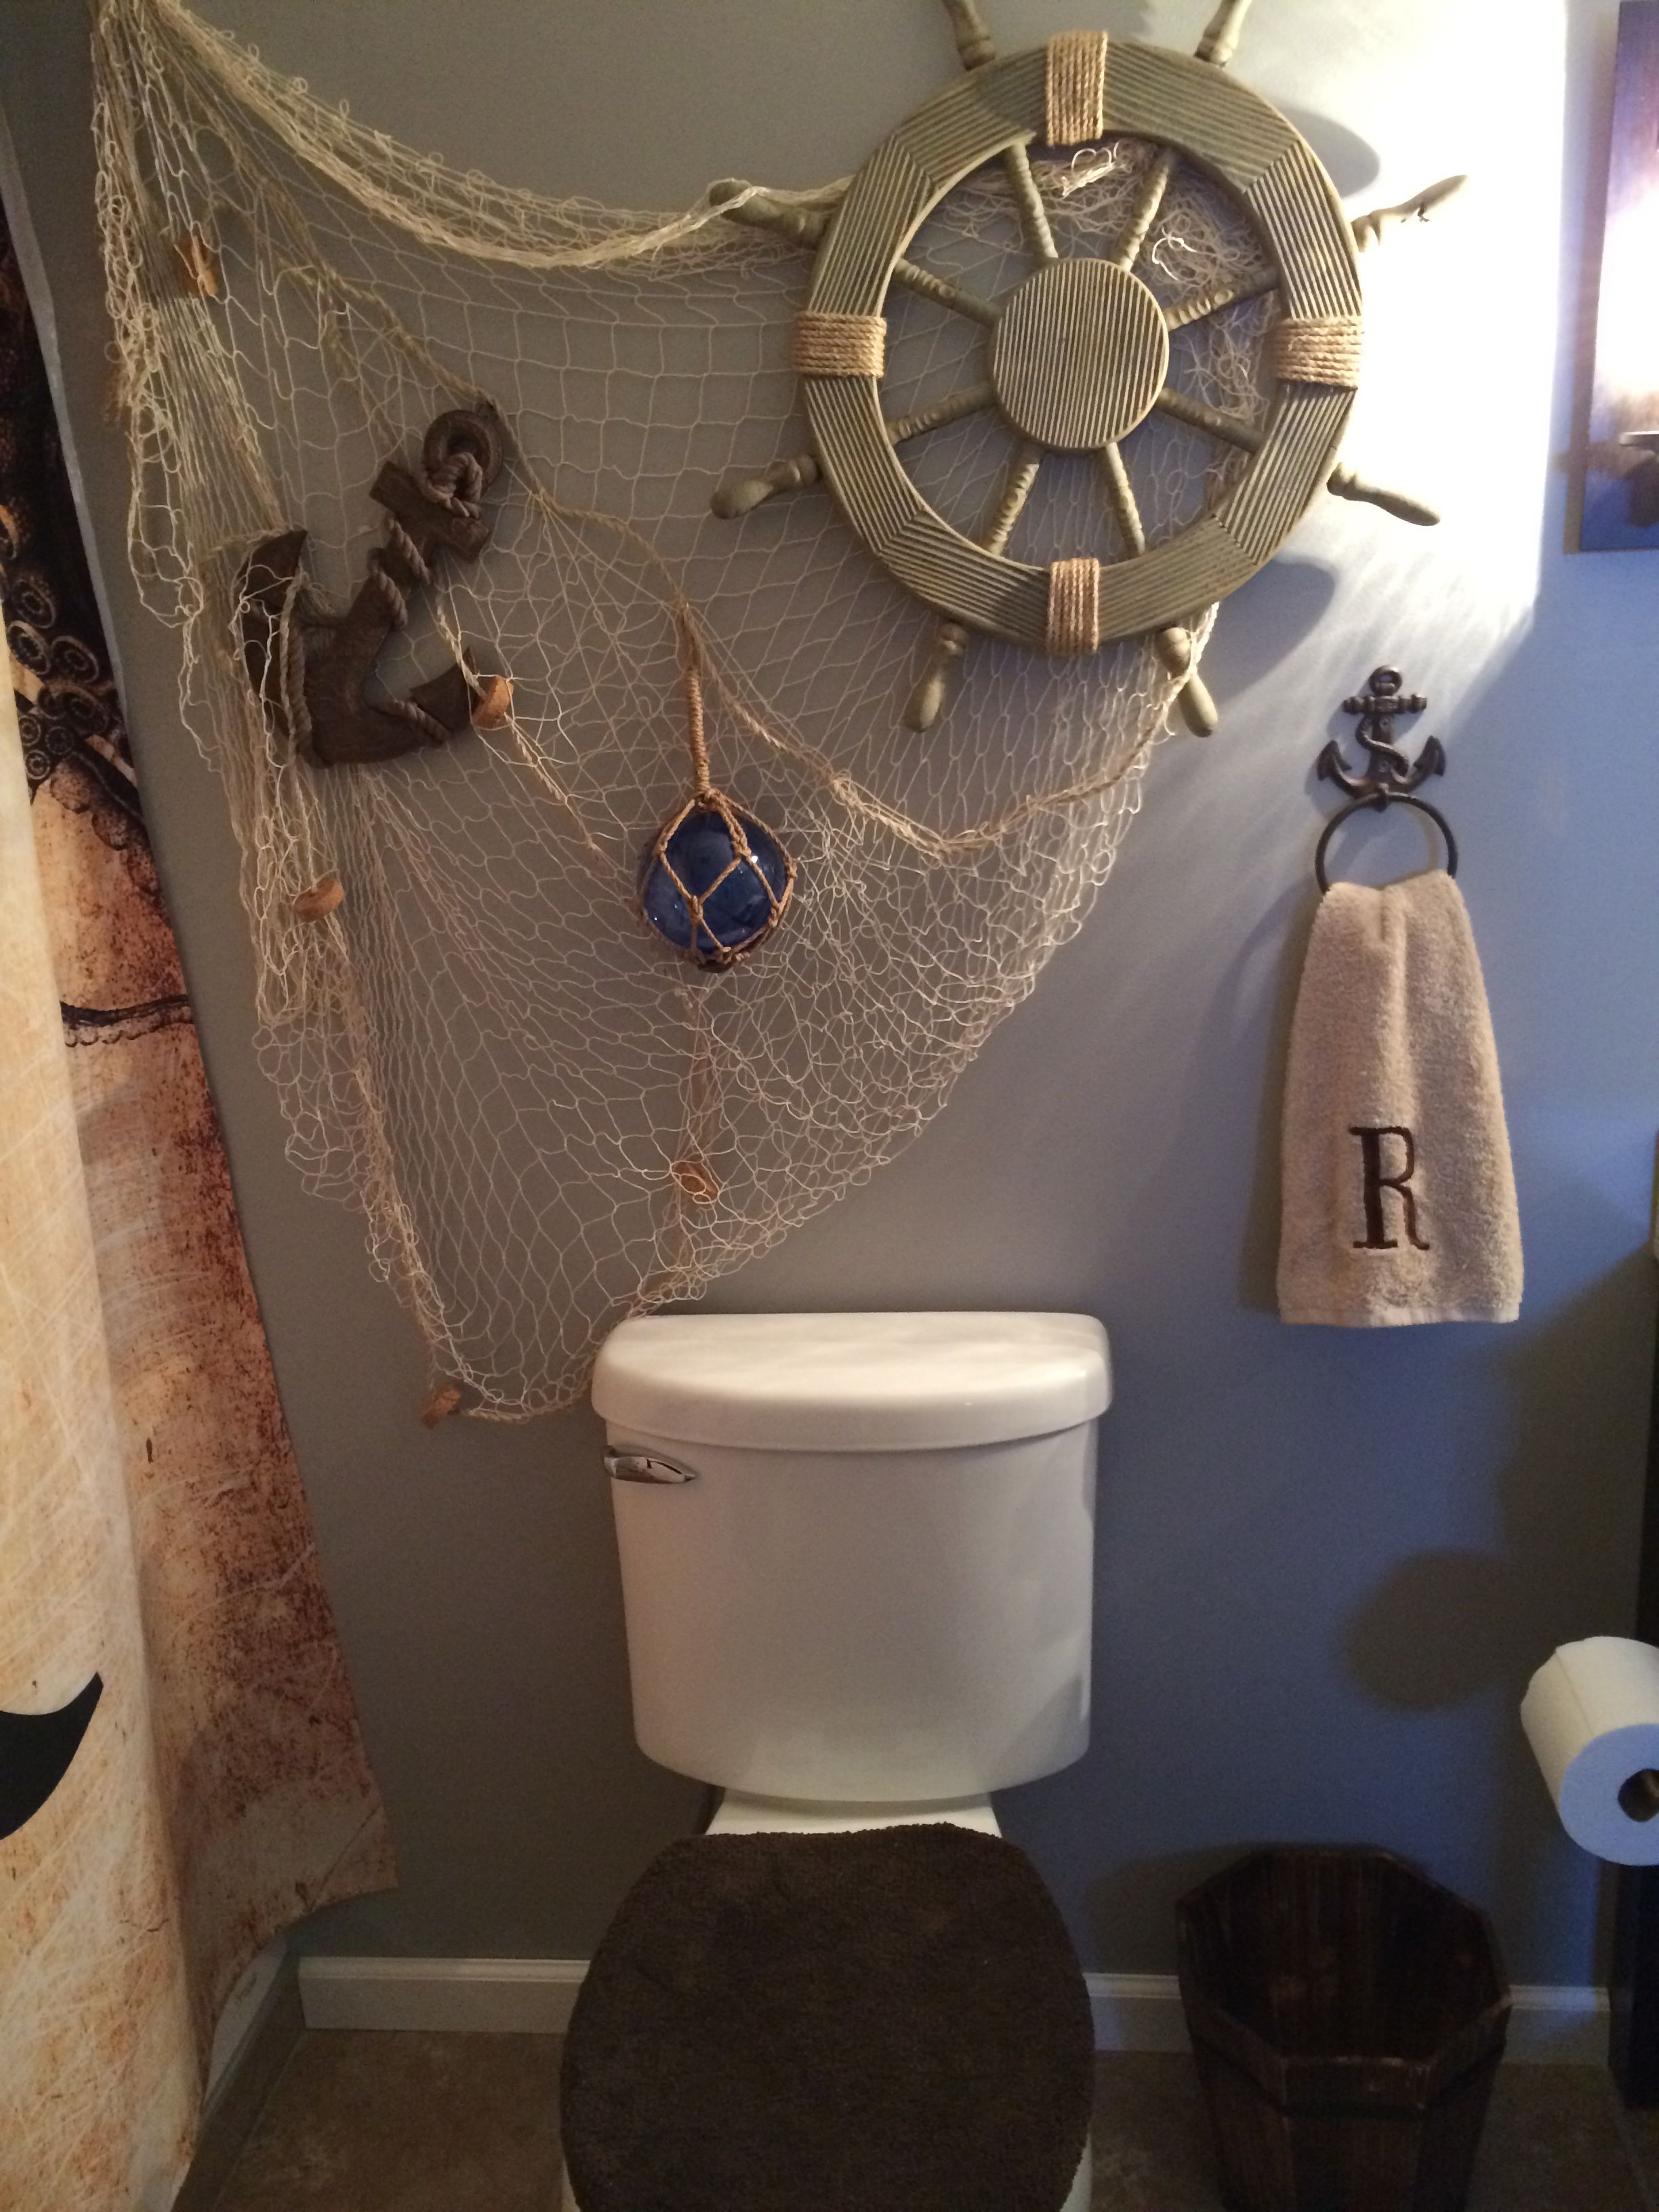 mediterranean gold this way u003ebeach pirate bathroom bathroom decor rh pinterest com Nautical Bathroom Decor Pirate Bathroom Ideas